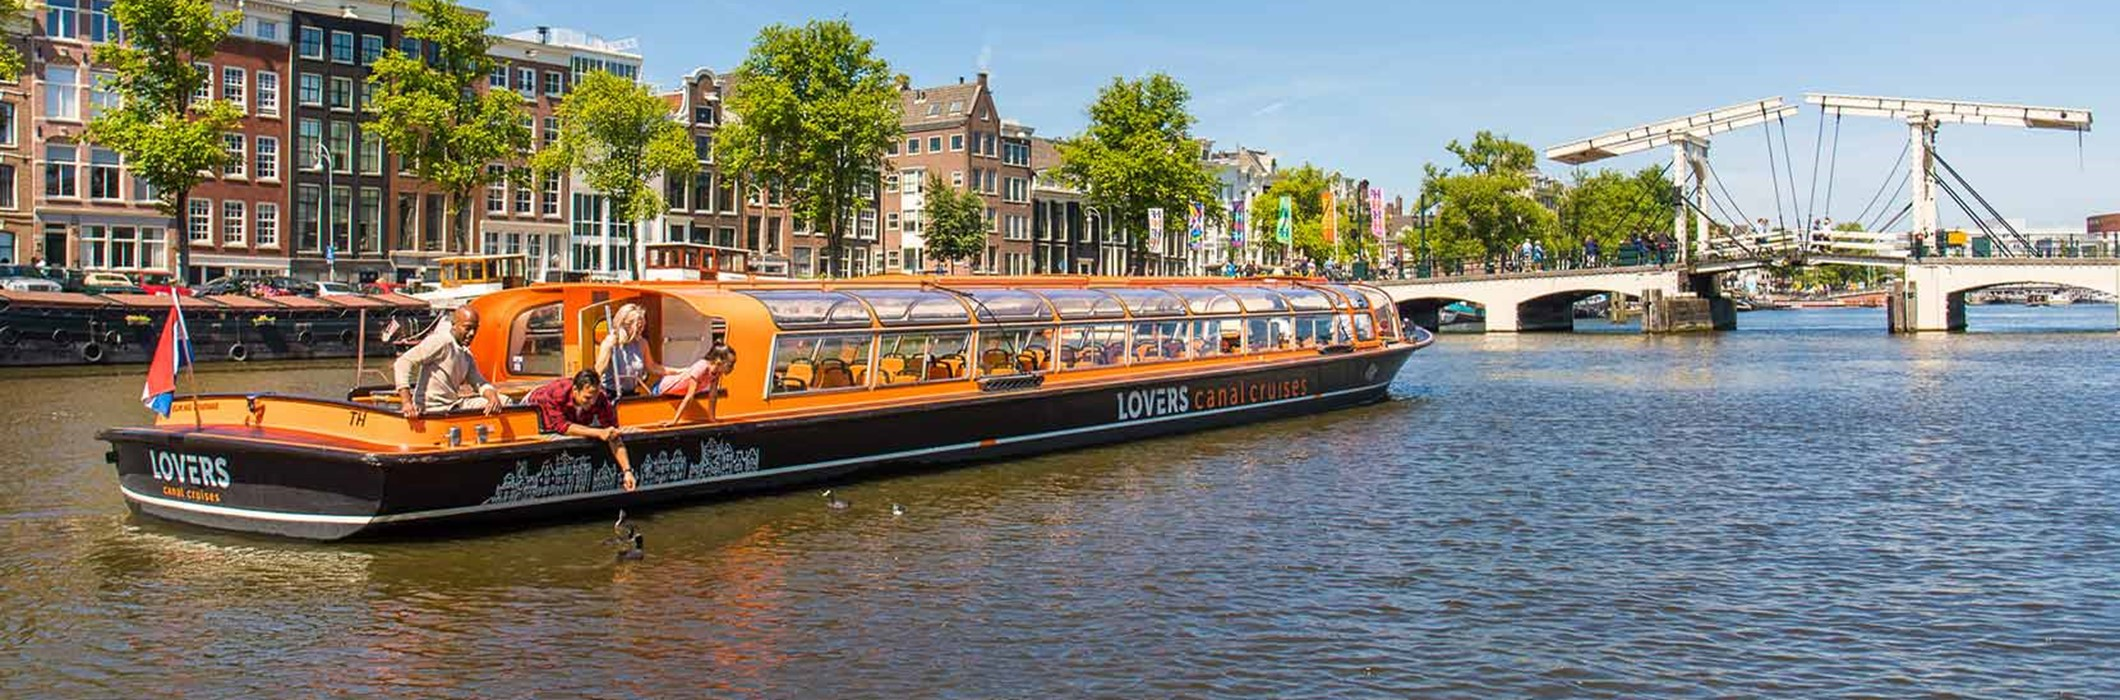 1 h. Amsterdam Day Canal Cruise (departs near Rijksmuseum)